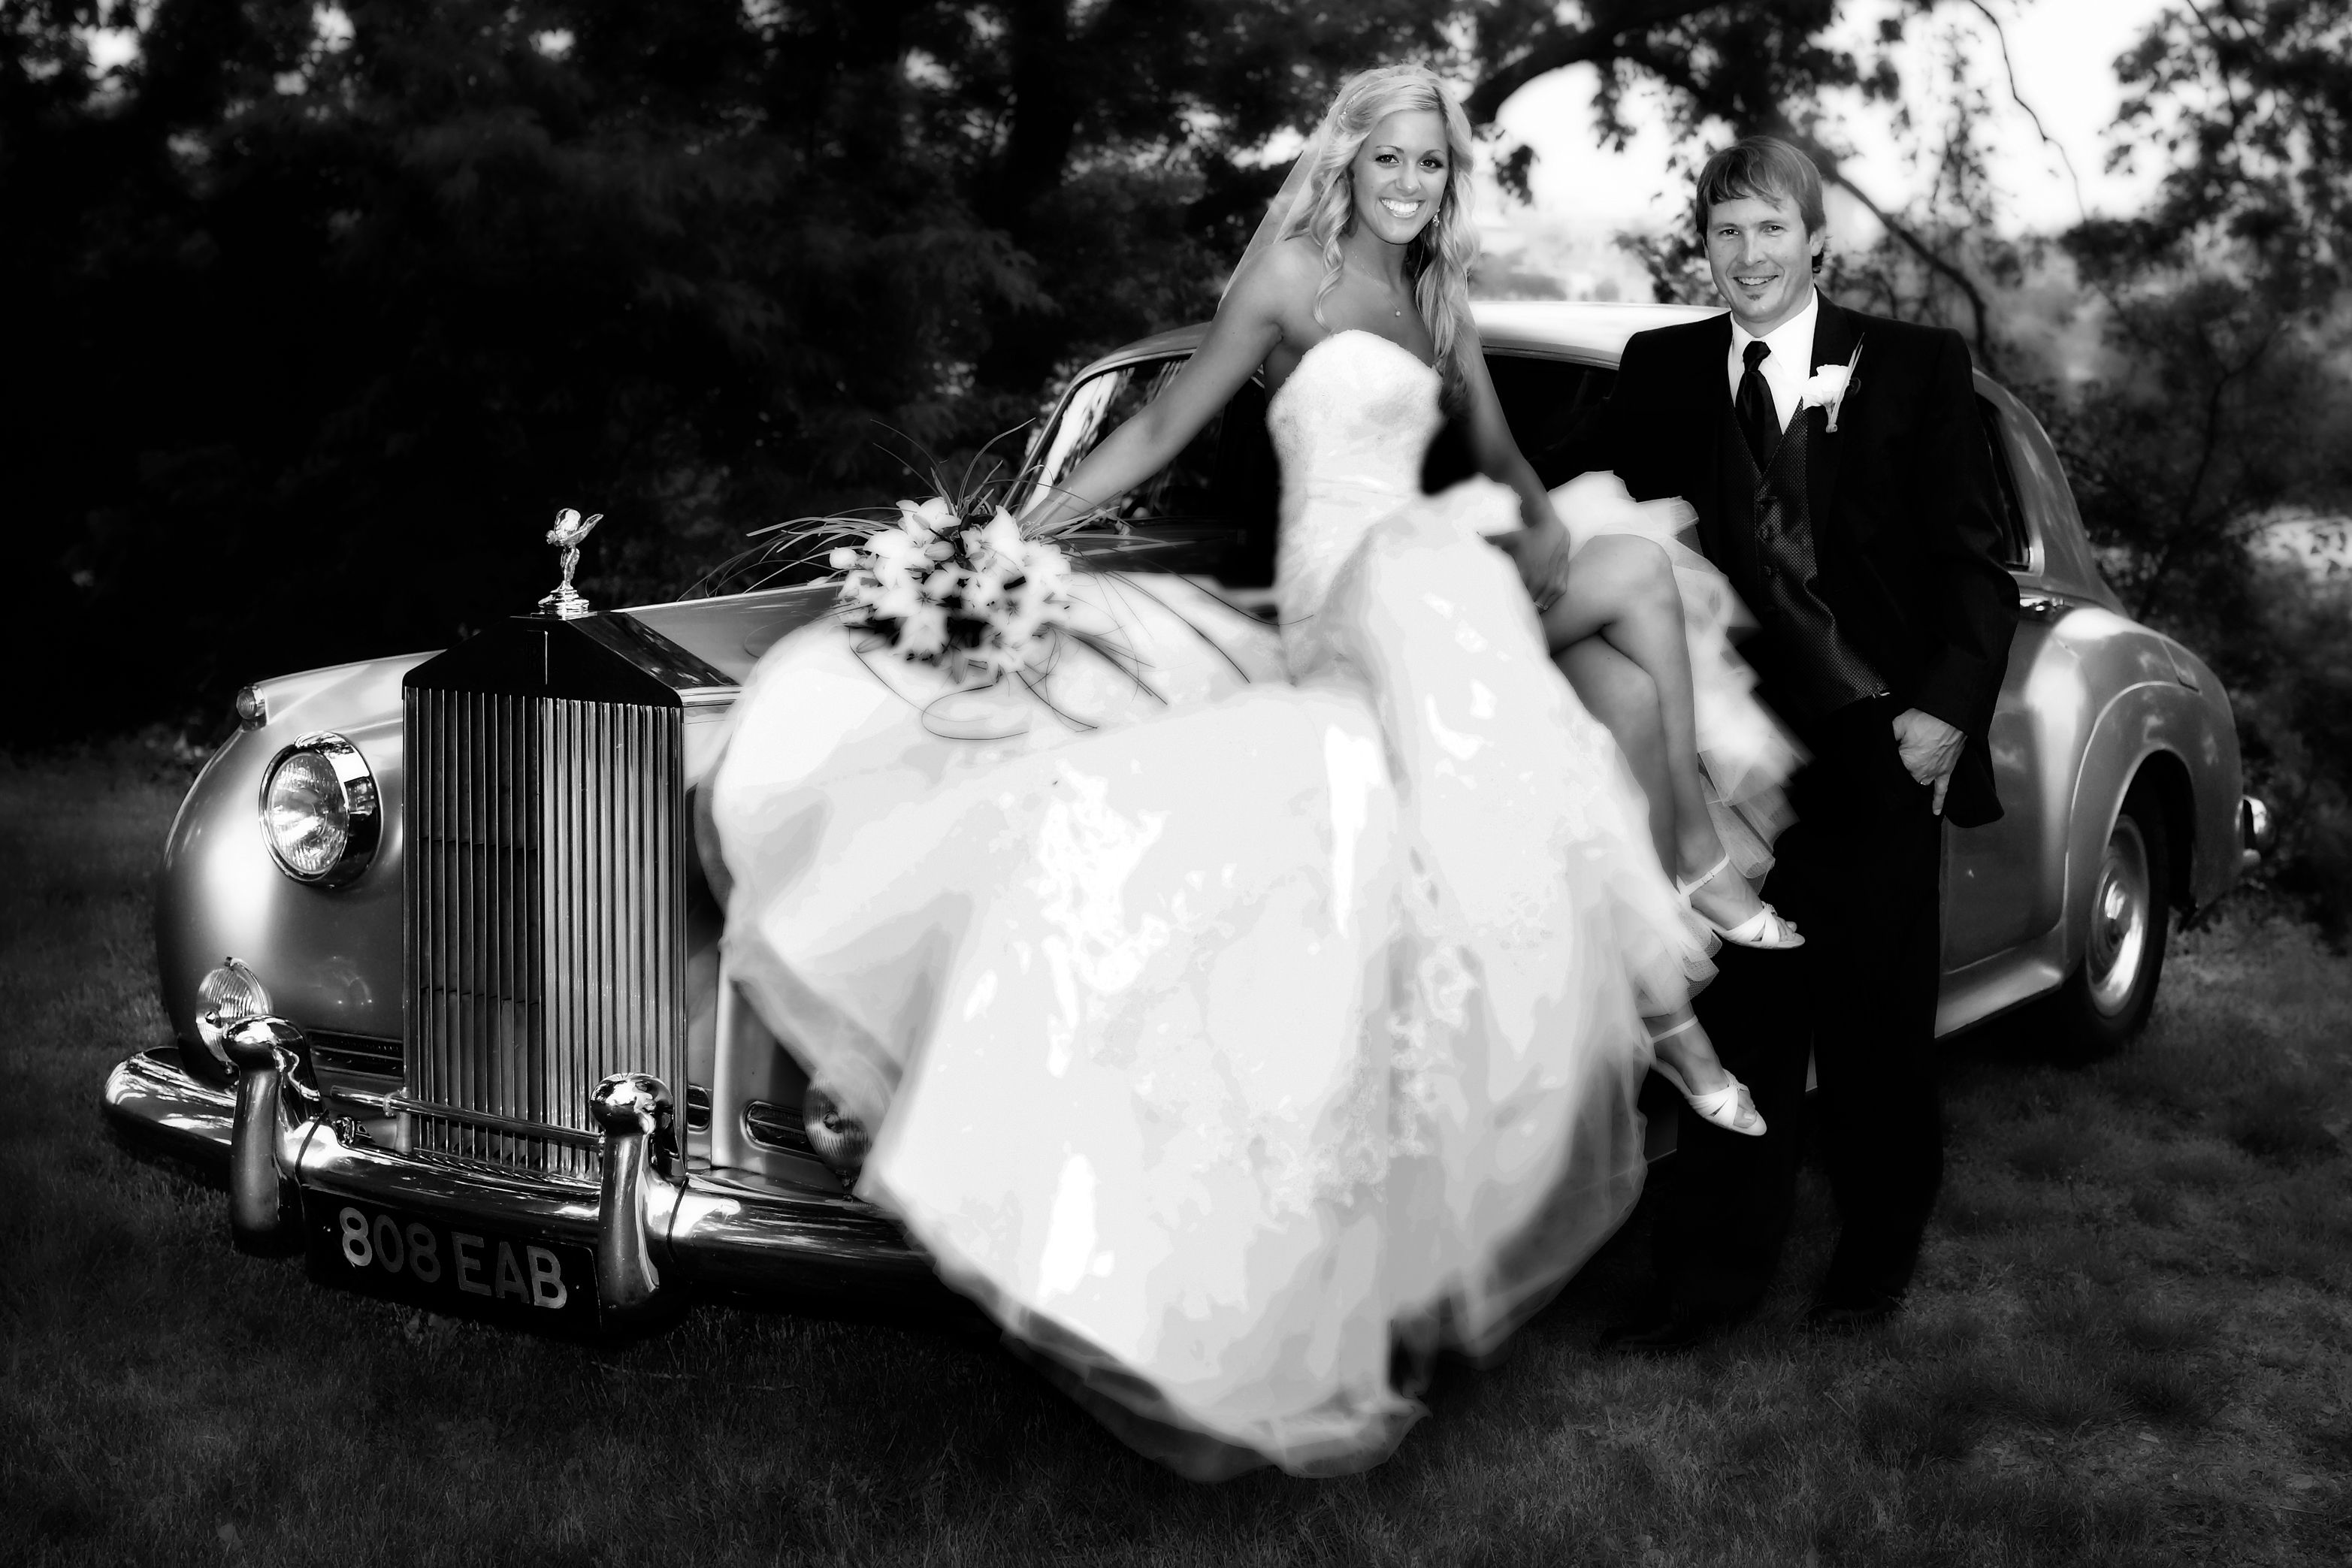 old car with bride and groom | Wedding car